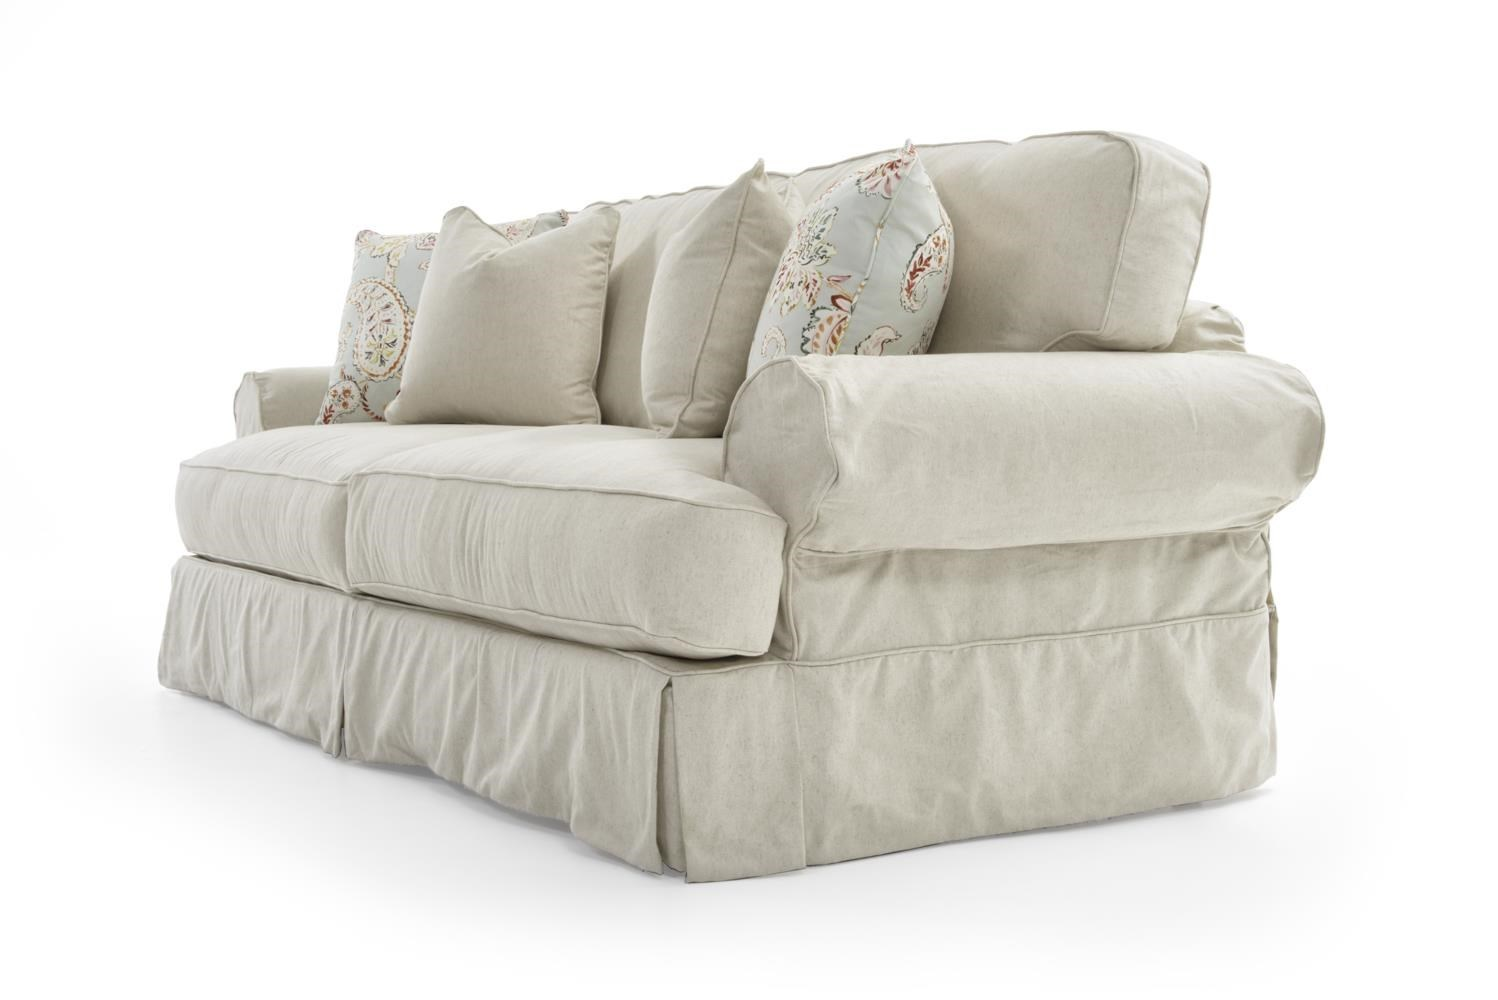 rowe nantucket sofa slipcover replacement one and 2 chairs outlet